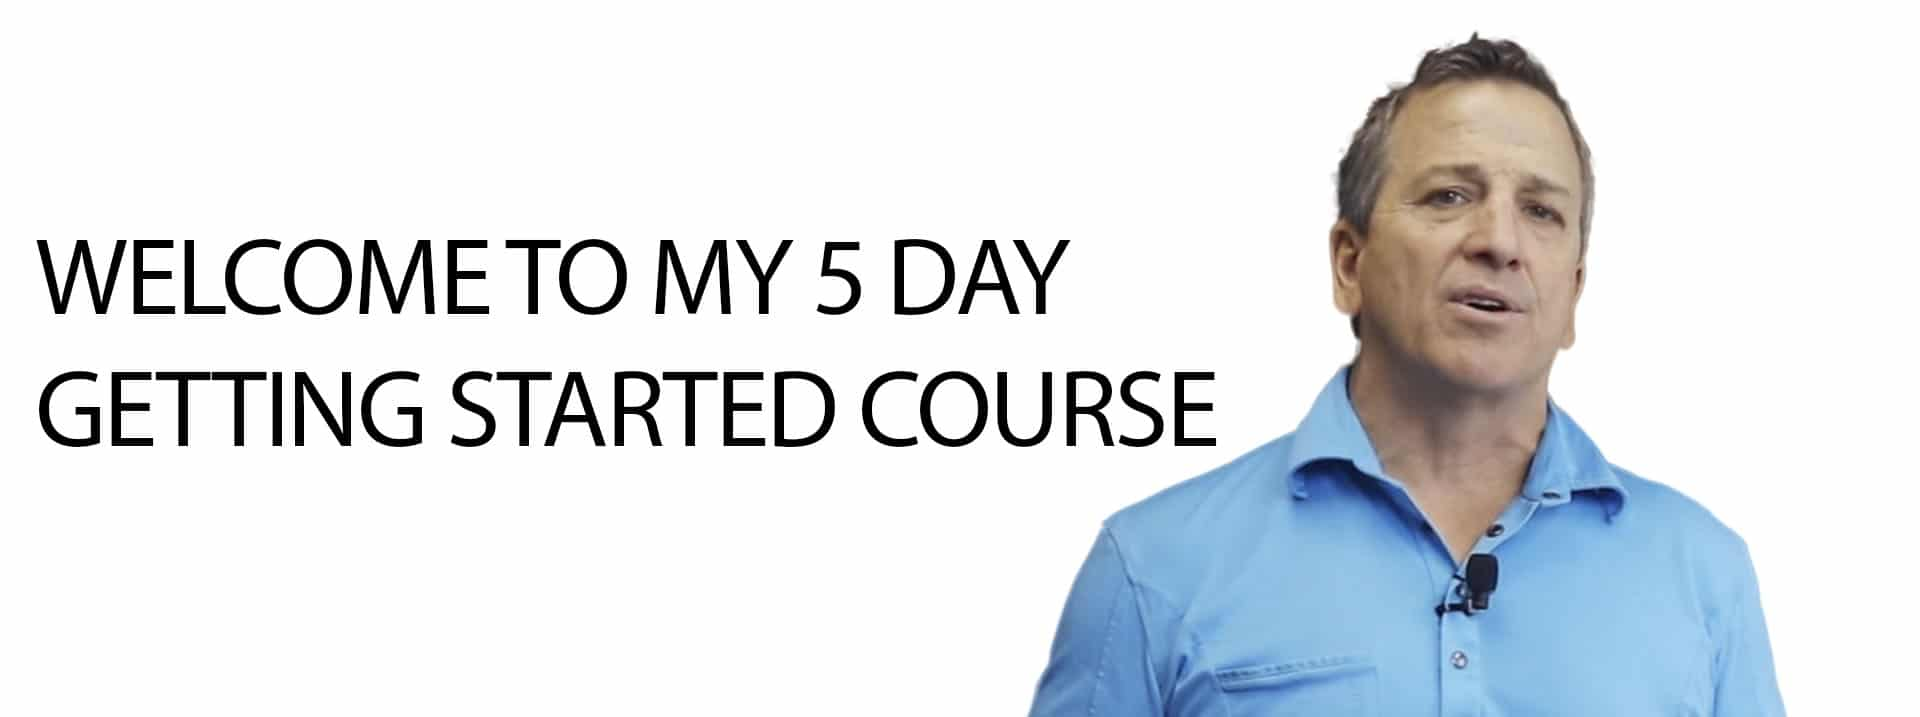 5 day getting started course | Ken McElroy Image